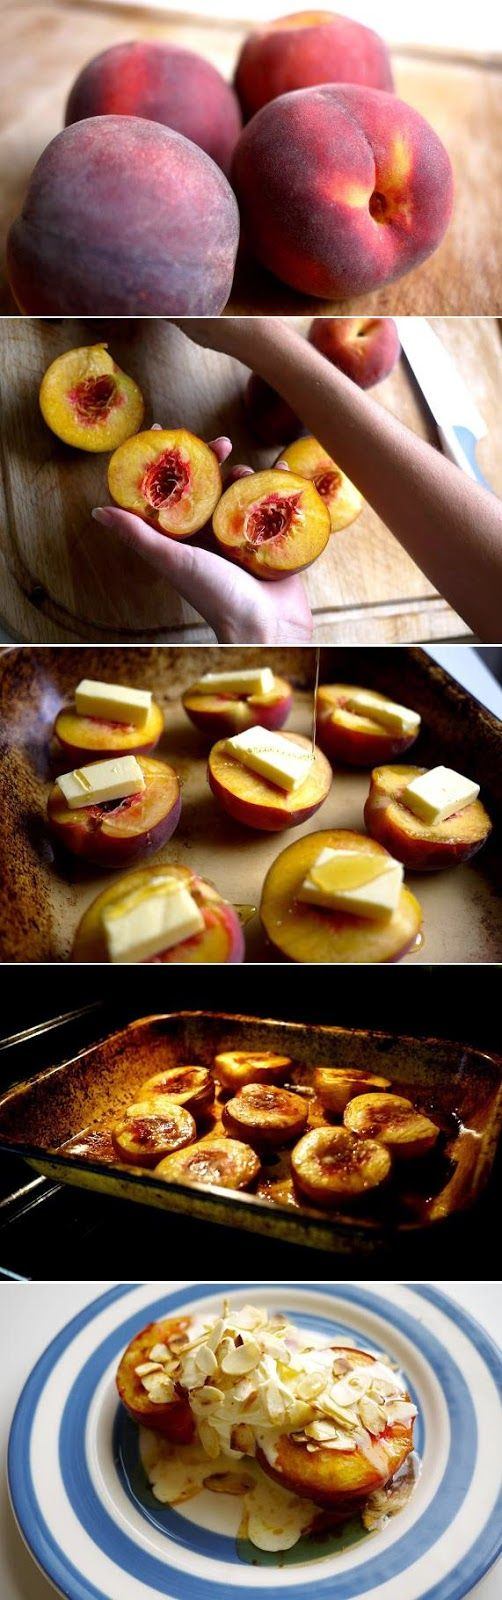 INGREDIENTS :   4 Peaches   Butter   Honey   250g Marscapone   150ml Double cream   1tsp Vanilla extract   Flaked almonds